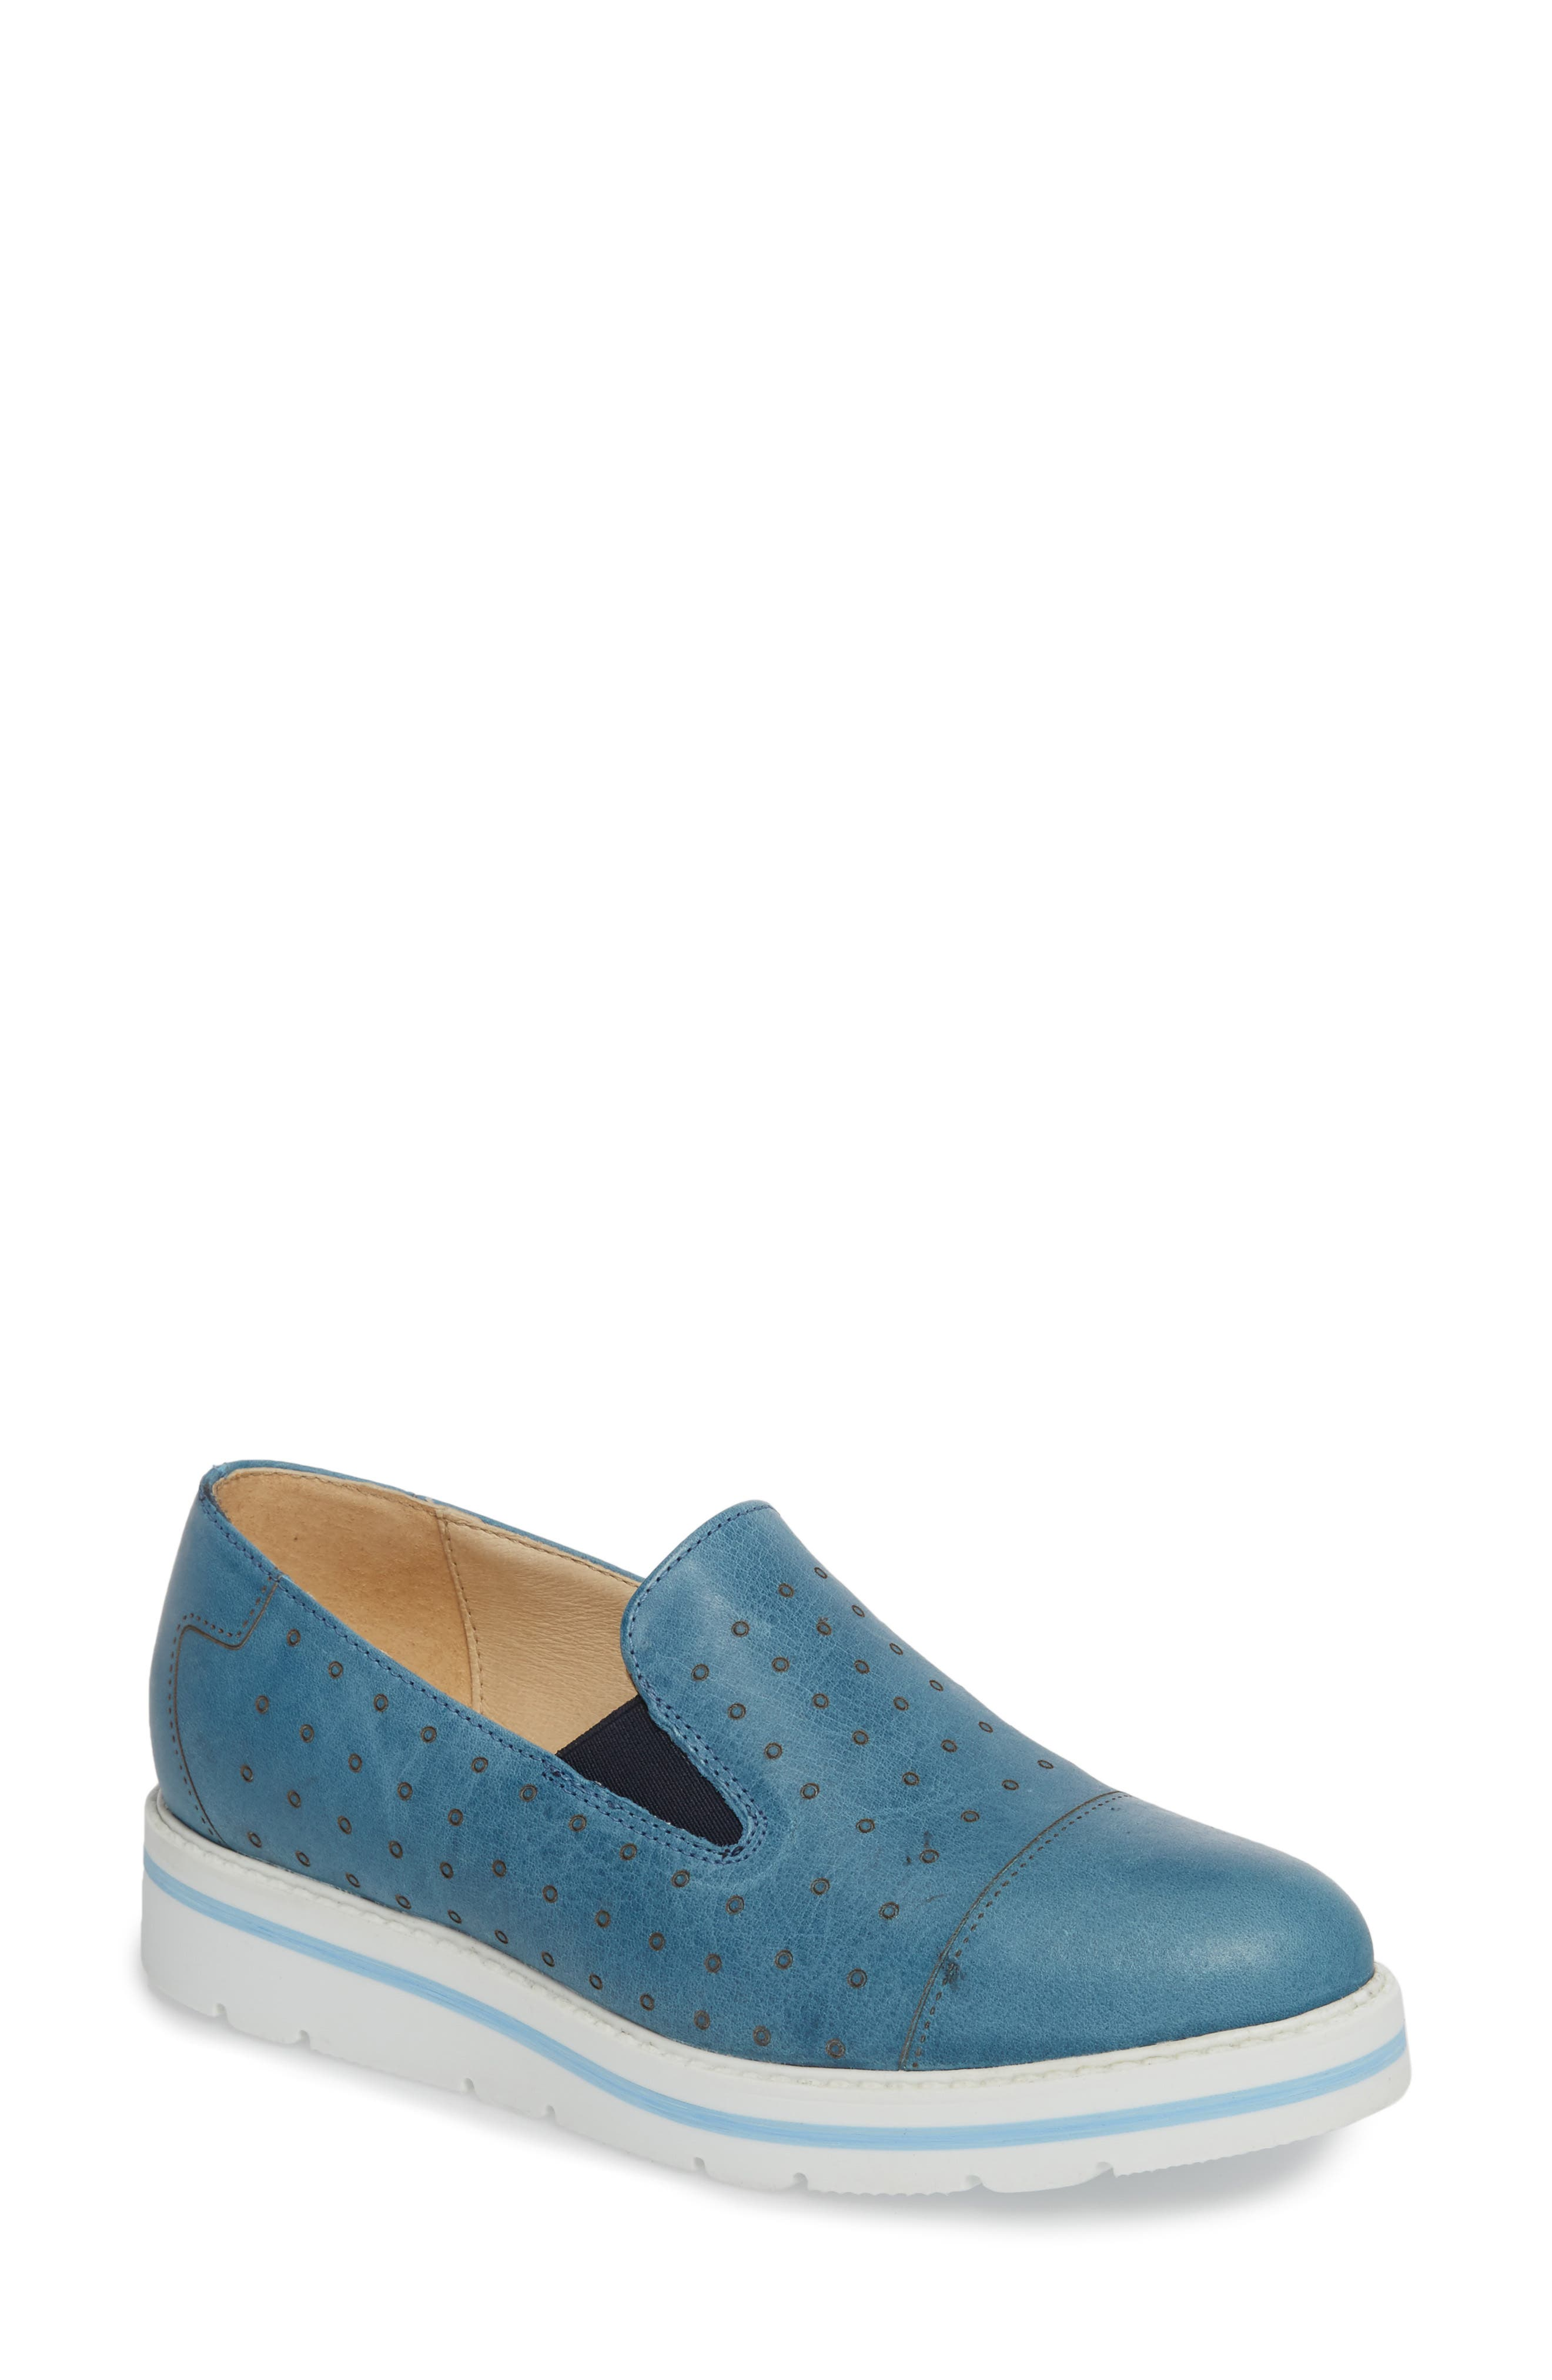 Leigh Slip-On Sneaker,                             Main thumbnail 1, color,                             Blue Glamour Leather